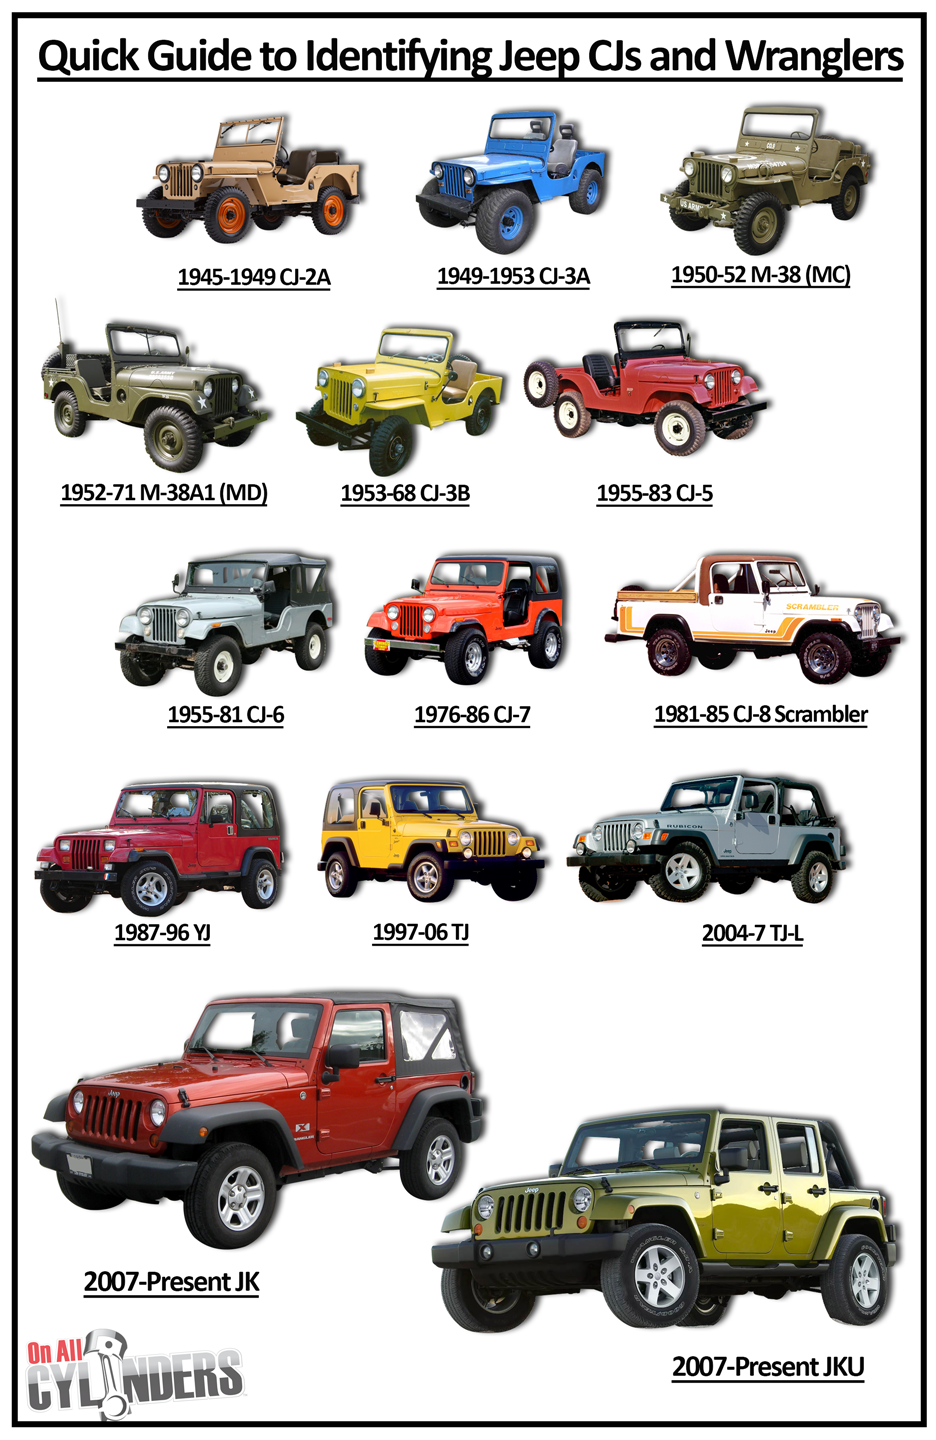 A Brief History Of Jeep Cj And Wrangler Vehicles Civilian Jeep Cjs